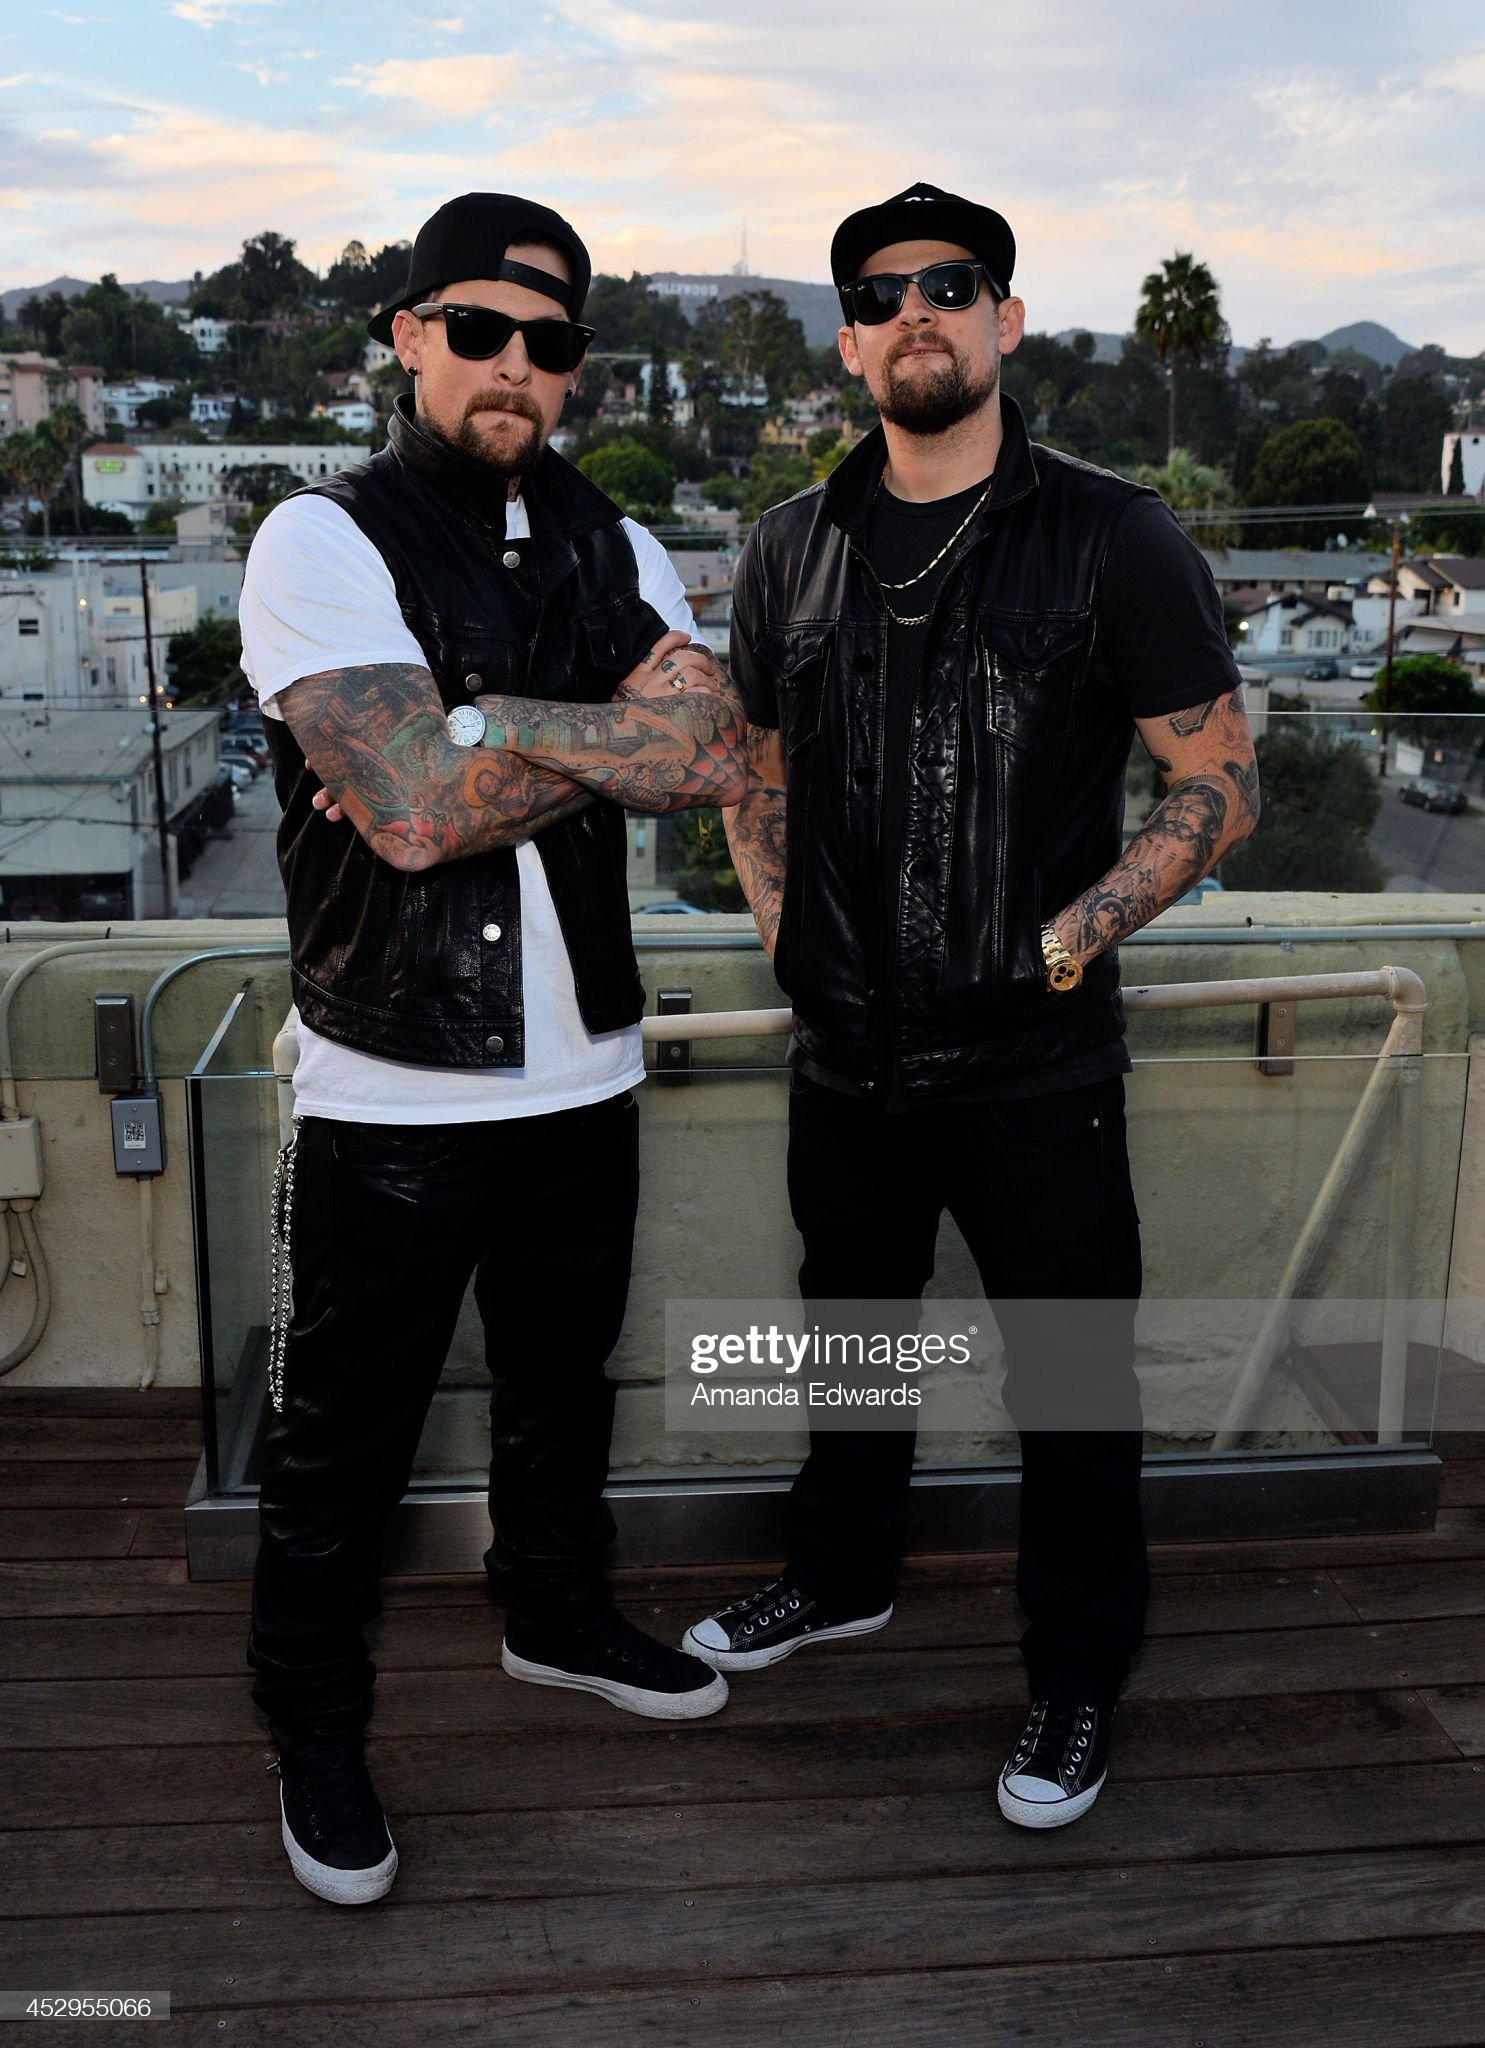 ¿Cuánto mide Benji Madden? - Altura - Real height Musicians-benji-madden-and-joel-madden-pose-before-performing-onstage-picture-id452955066?s=2048x2048